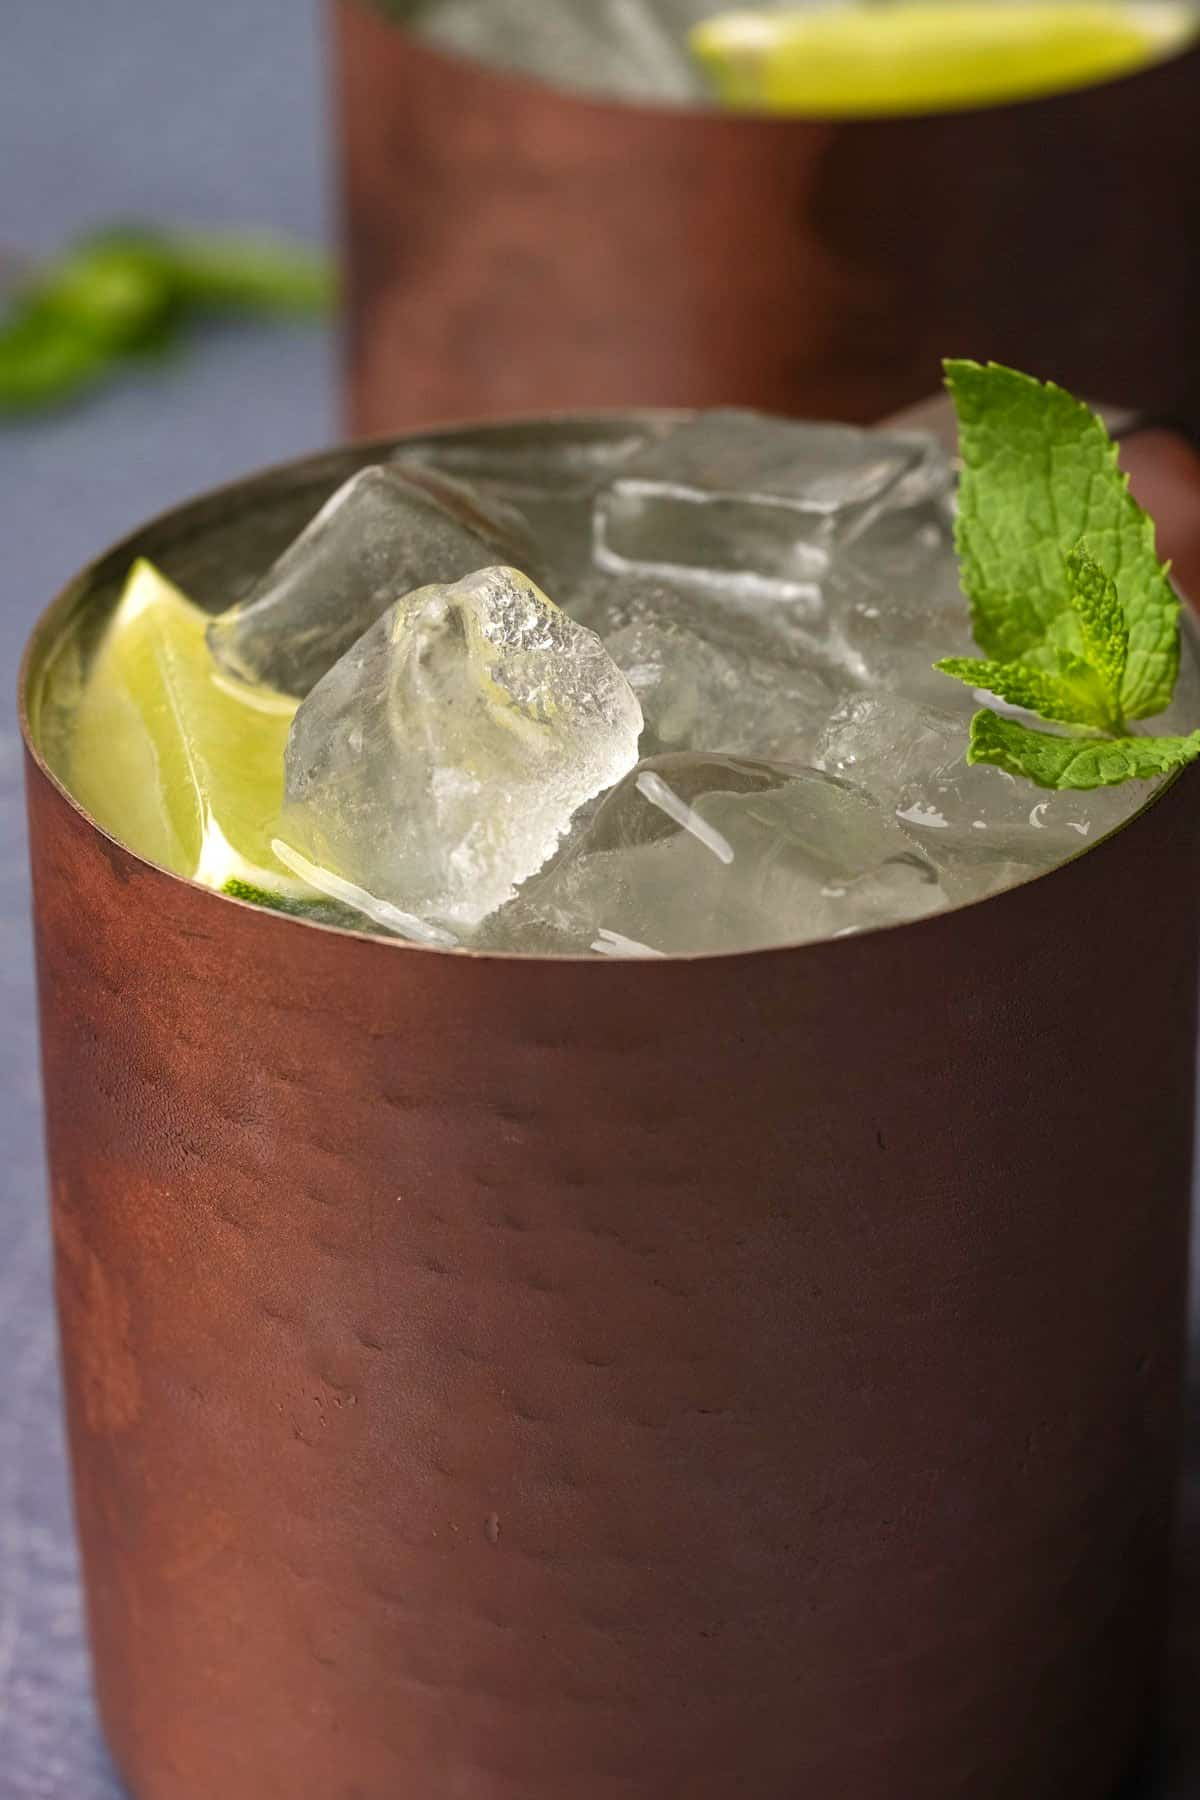 Moscow mule cocktail in a copper mug with fresh mint leaves and a lime wedge.